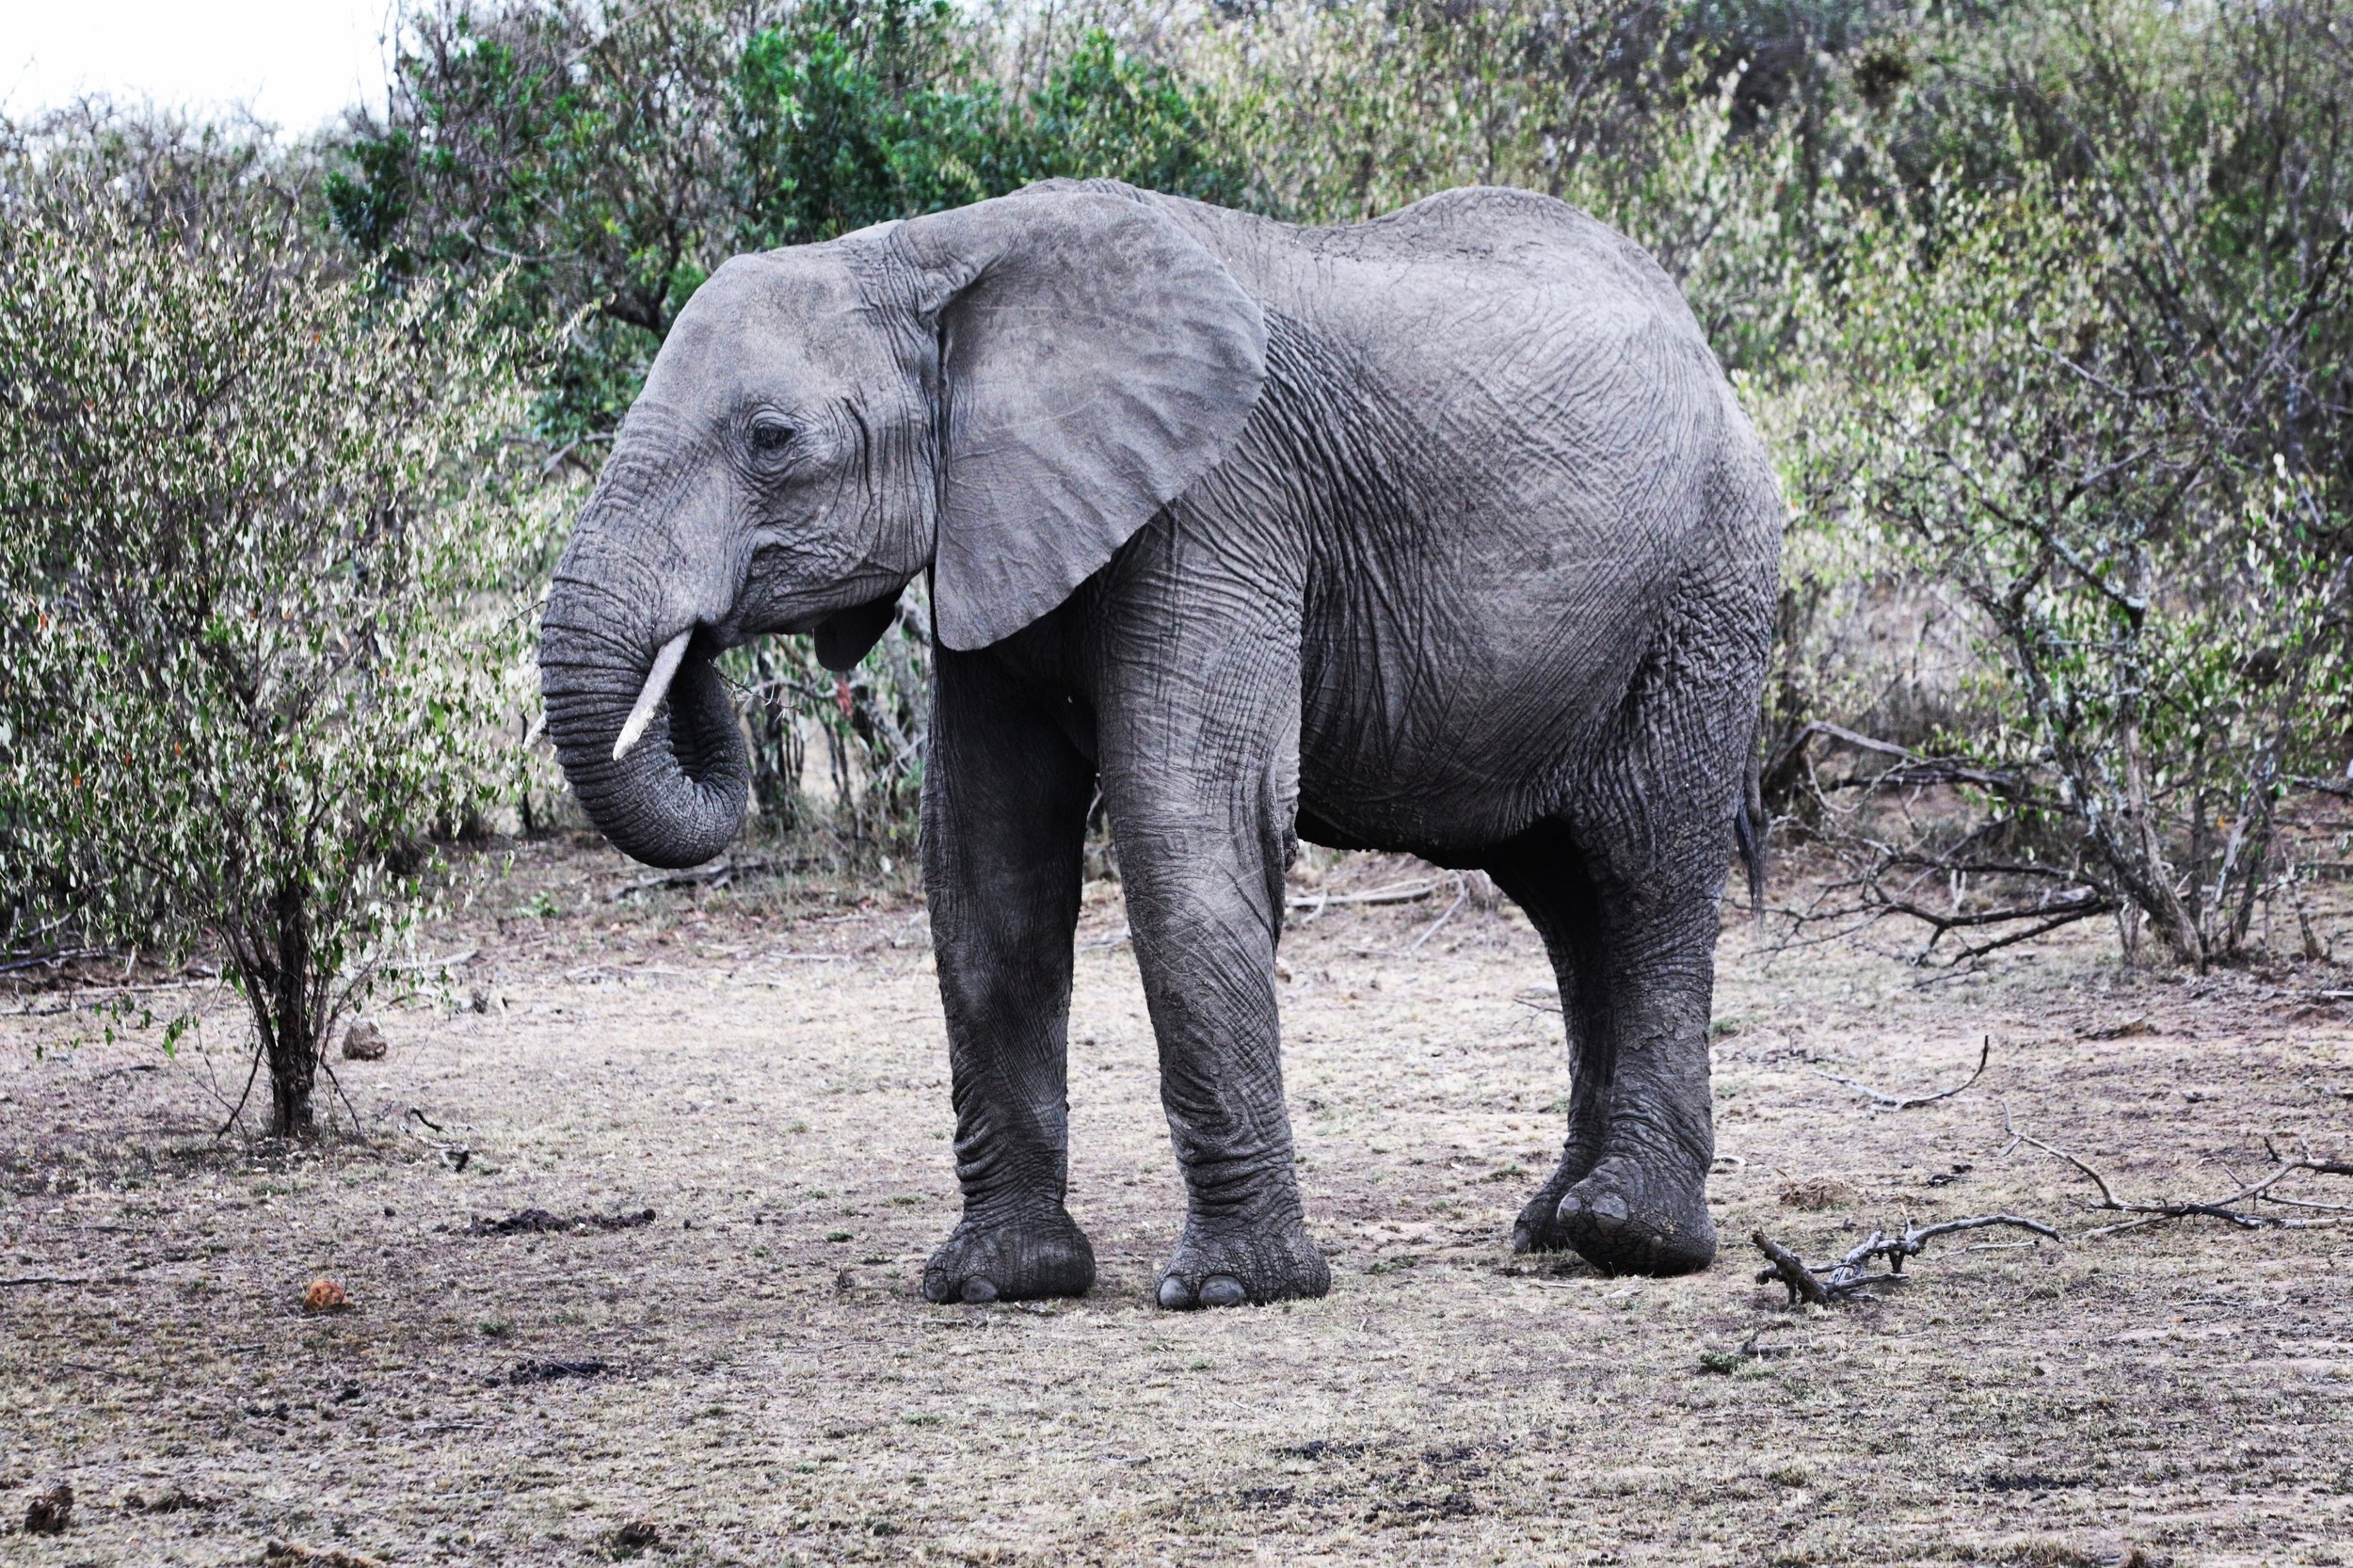 Elephants travel vast distances and teach their children the routes, paths, and traditions they themselves learned from their parents. Nashulai is a critical elephant birthing ground and ancient migratory corridor for the Maasai Mara elephant herds.